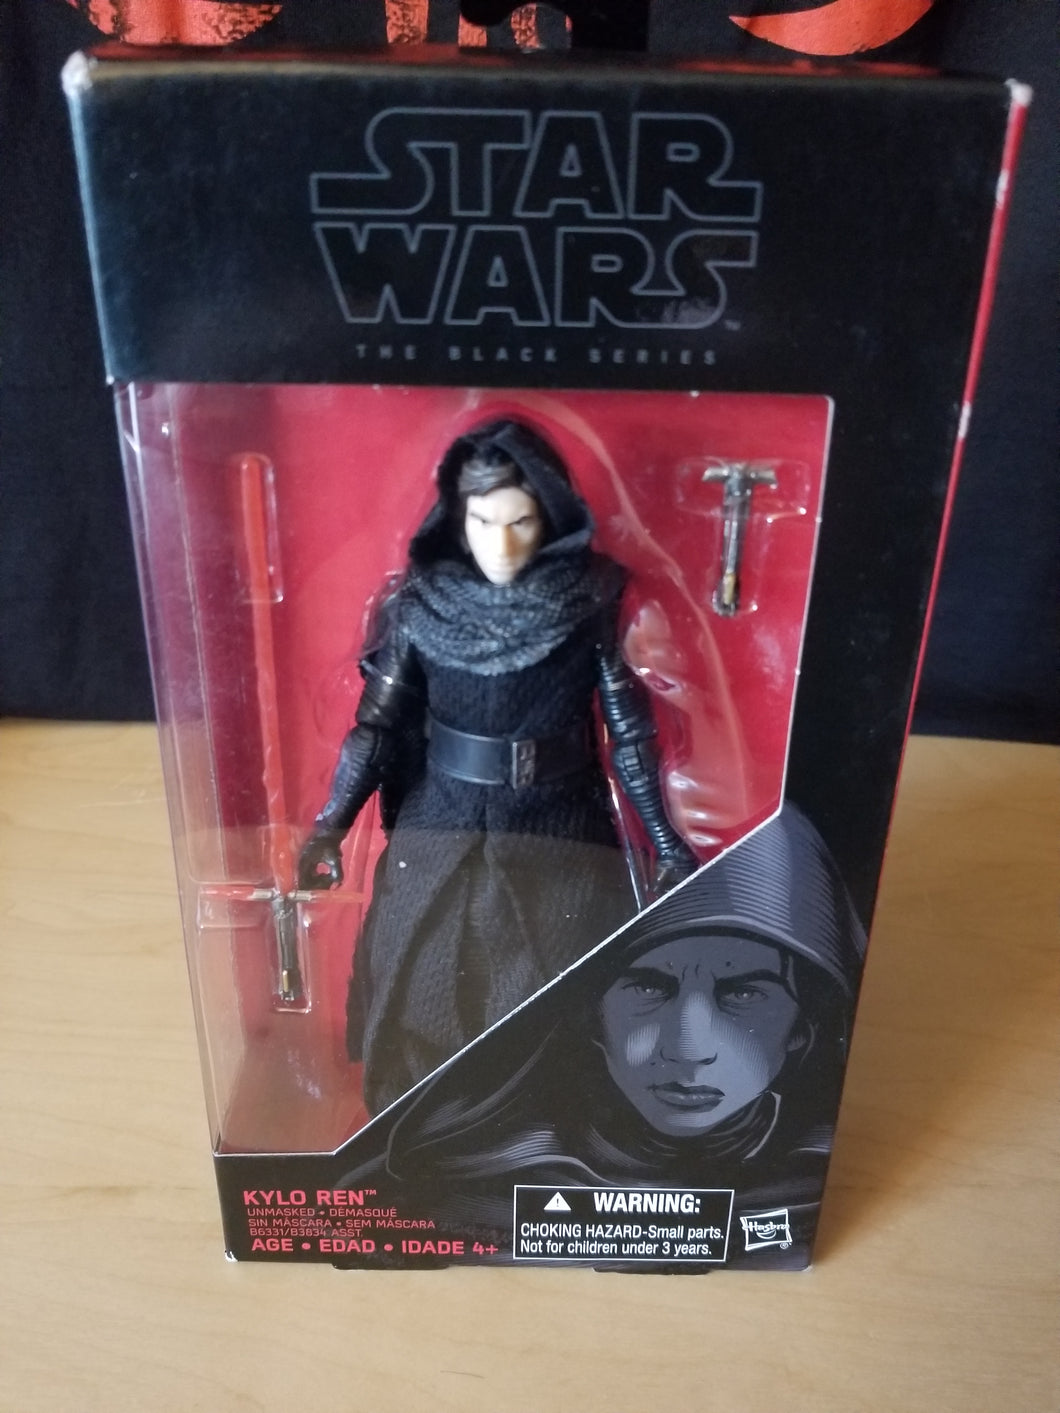 Kylo Ren #26 - The Black Series (6-inch figure)